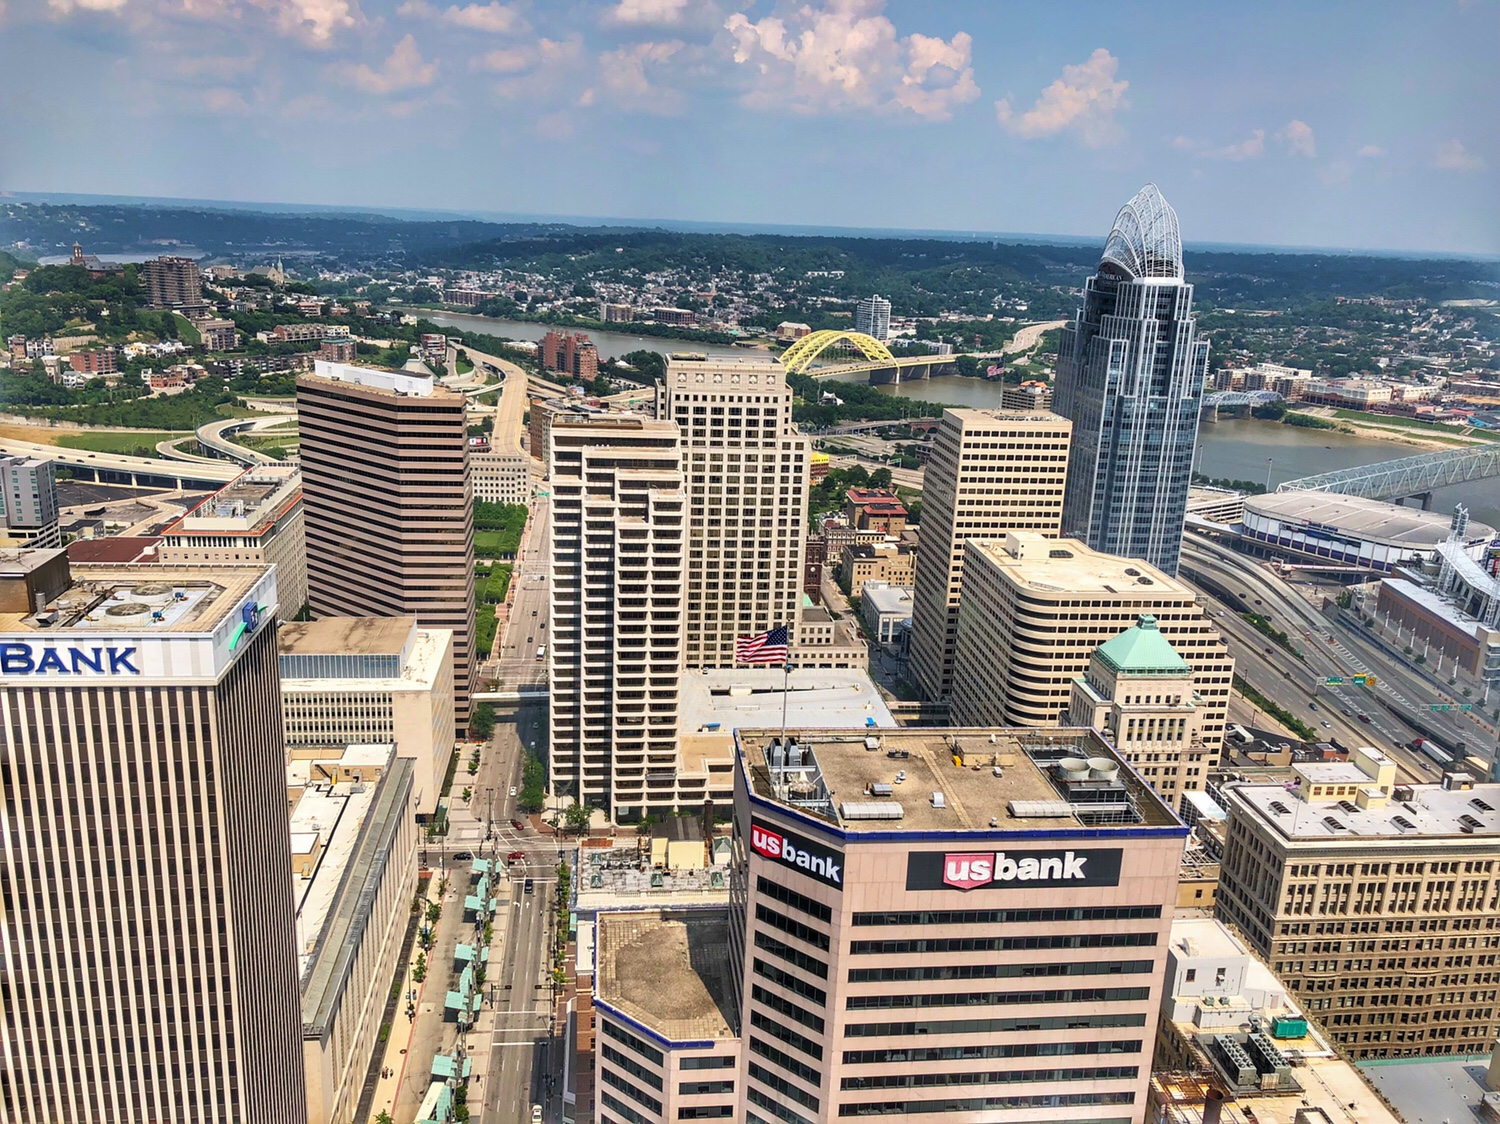 Cincinnati: A View from the Top – Carew Tower